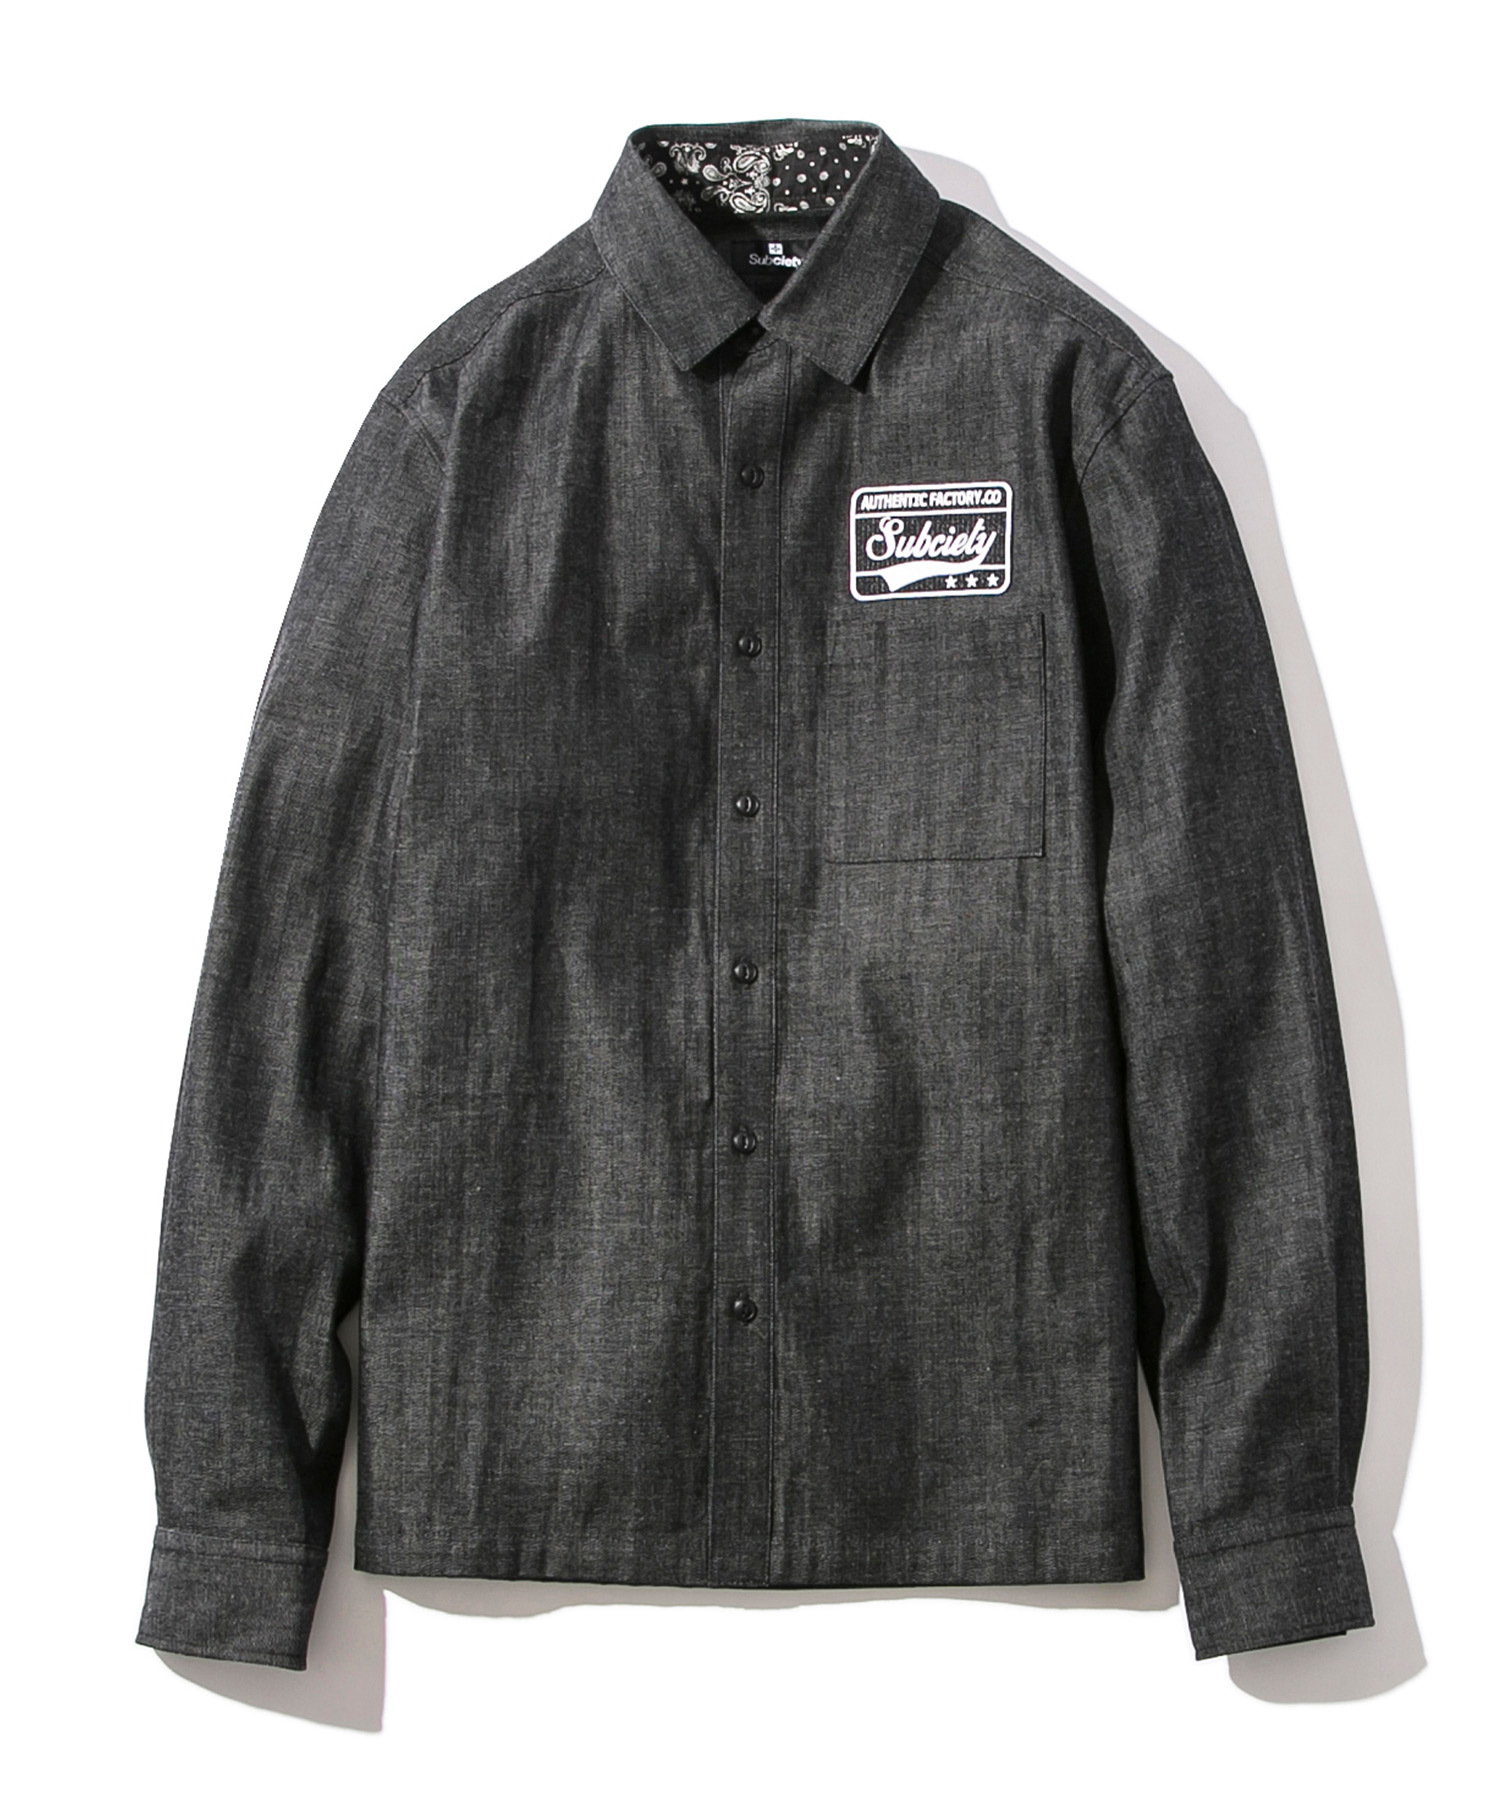 【Subciety | サブサエティ】EMBLEM SHIRT DENIM L/S